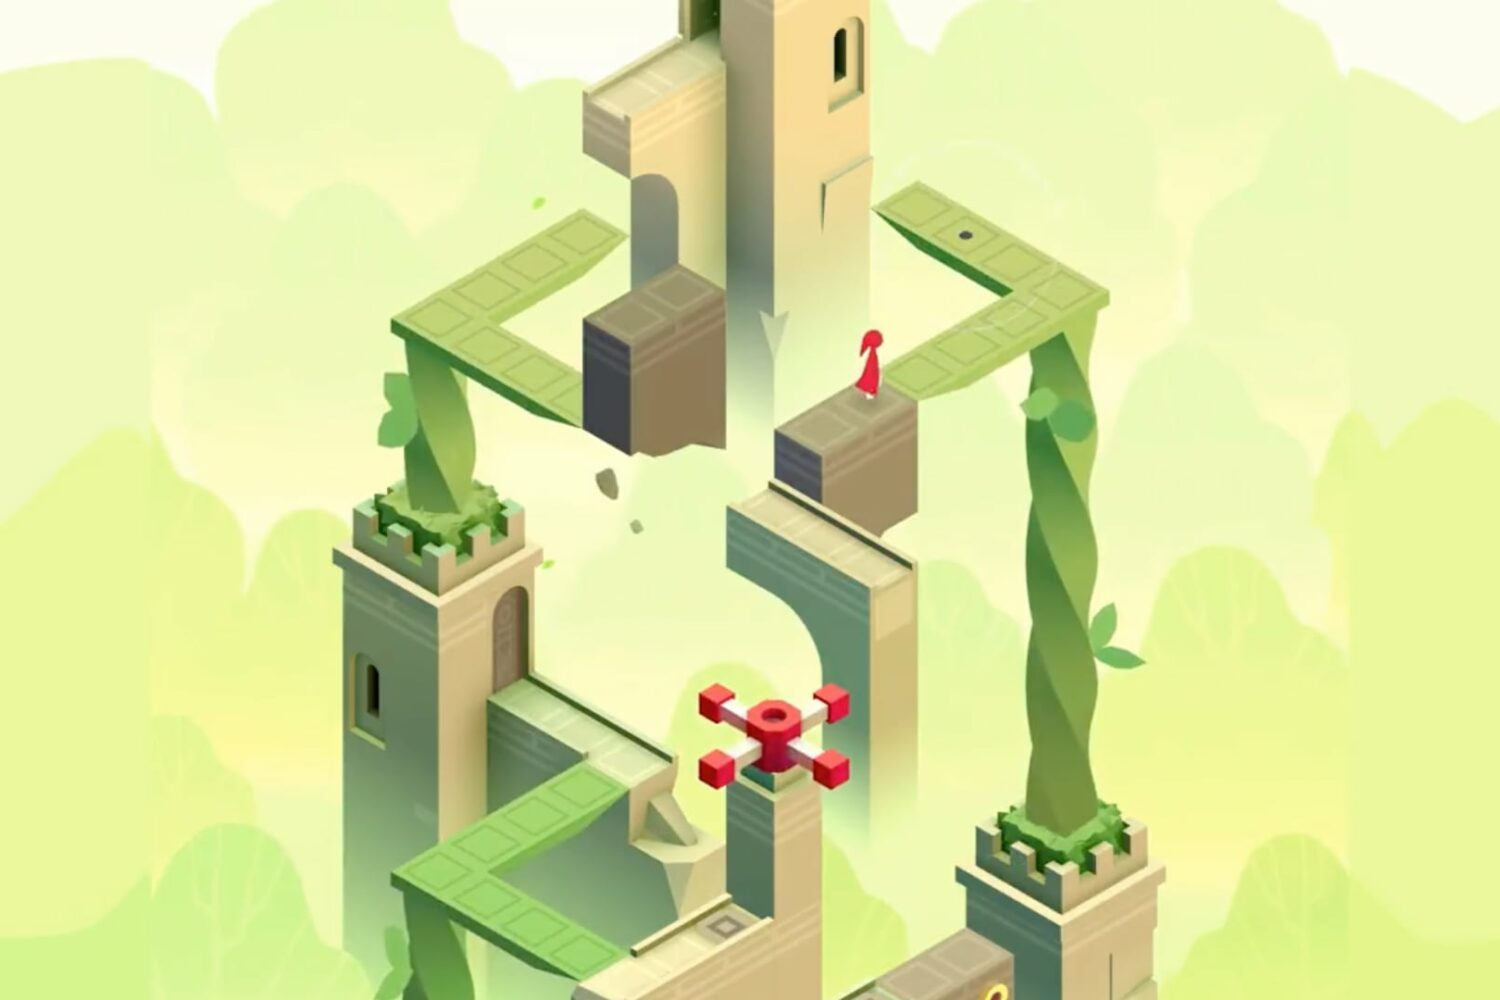 A scene from The Lost Forest level from the Monument Valley 2 game